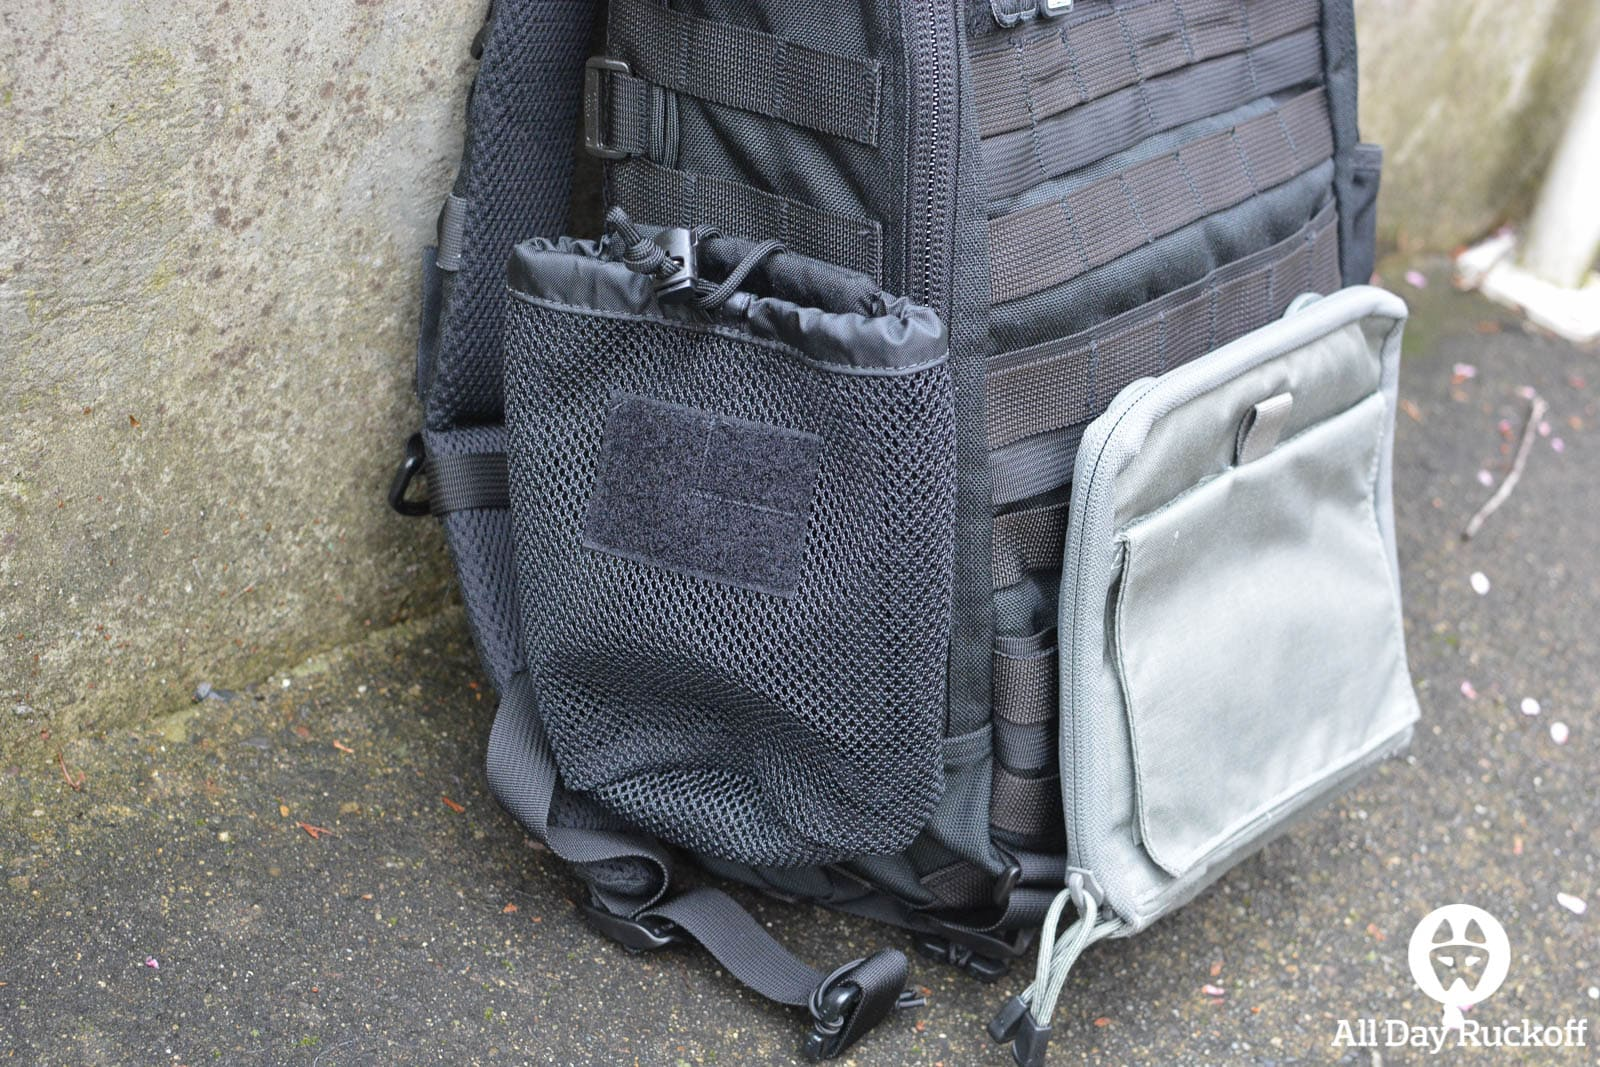 Triple Aught Design Litespeed Review - Water Bottle Pocket